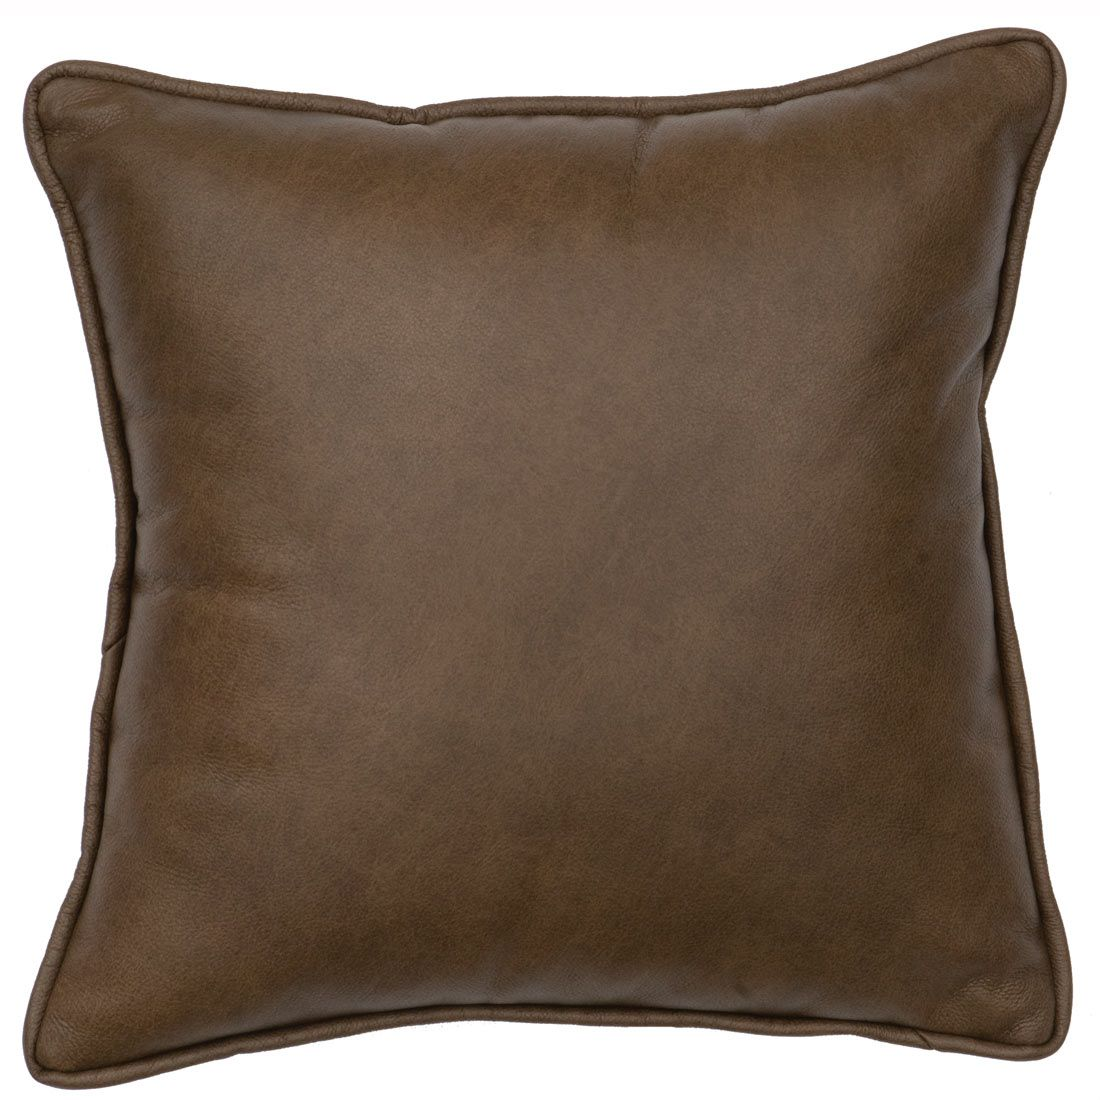 Desert Flower Leather Accent Pillow with Fabric Back